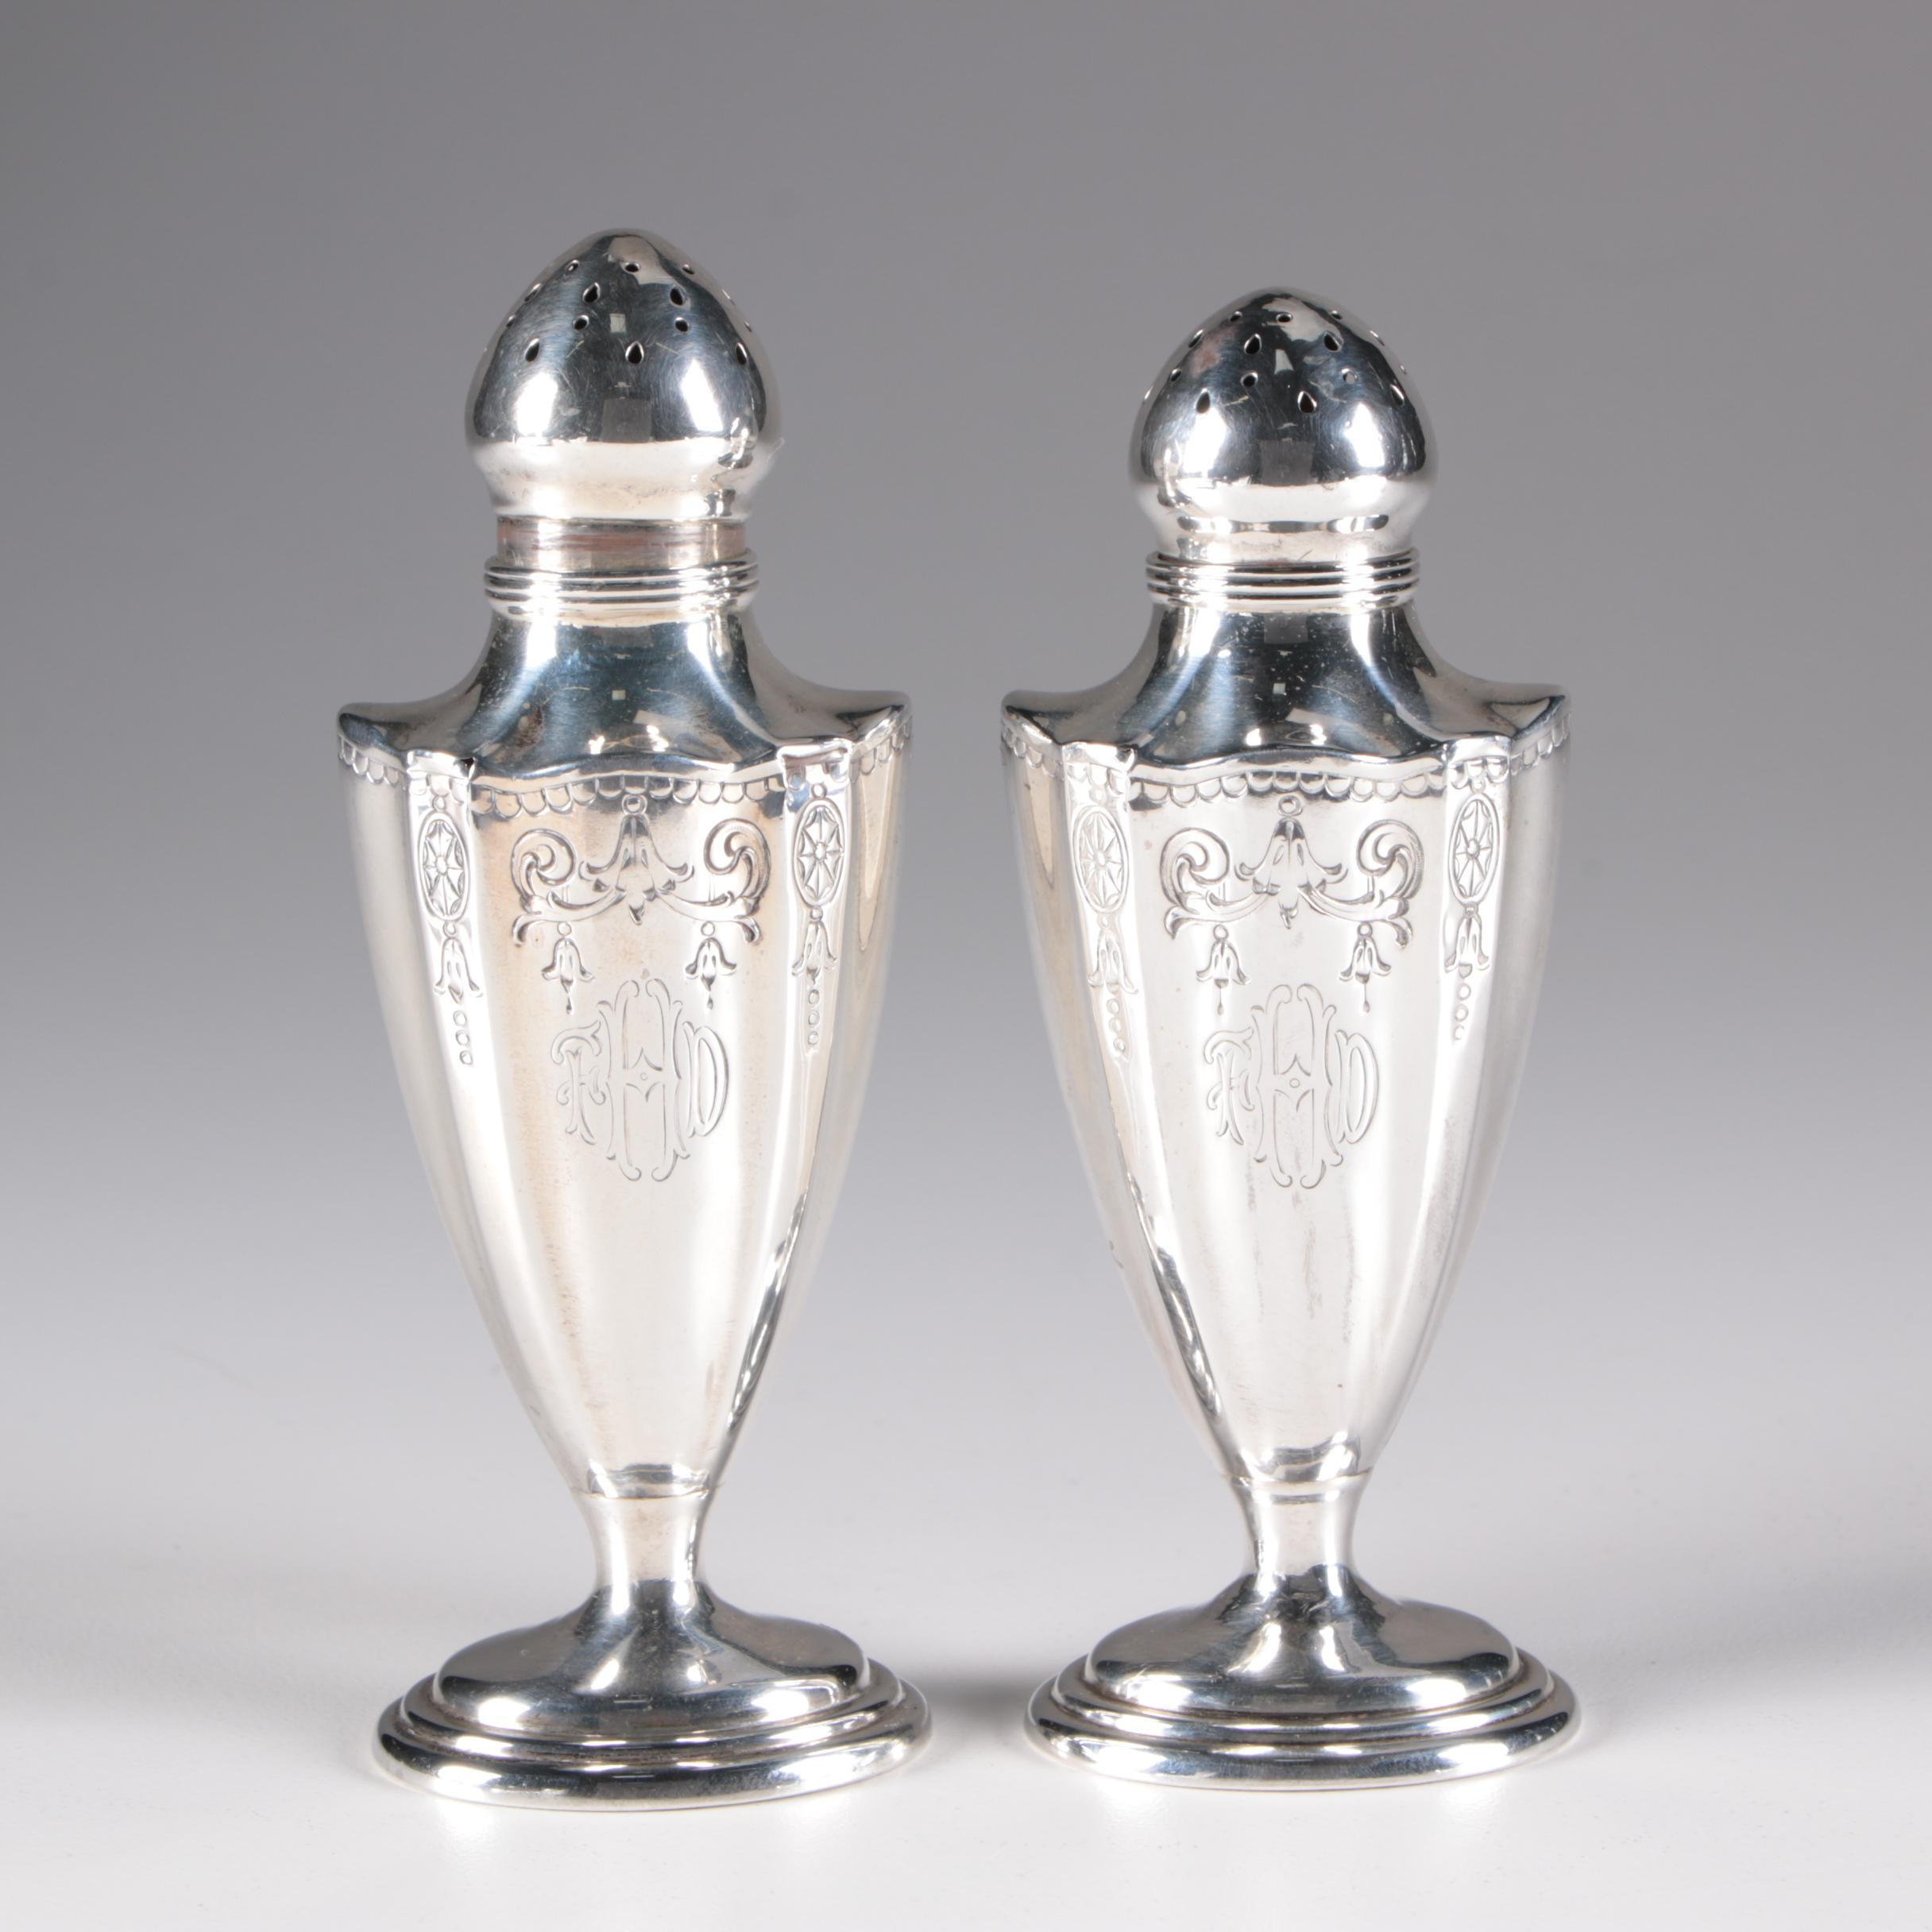 Gorham Cashed Sterling Silver Shaker Set, 20th Century